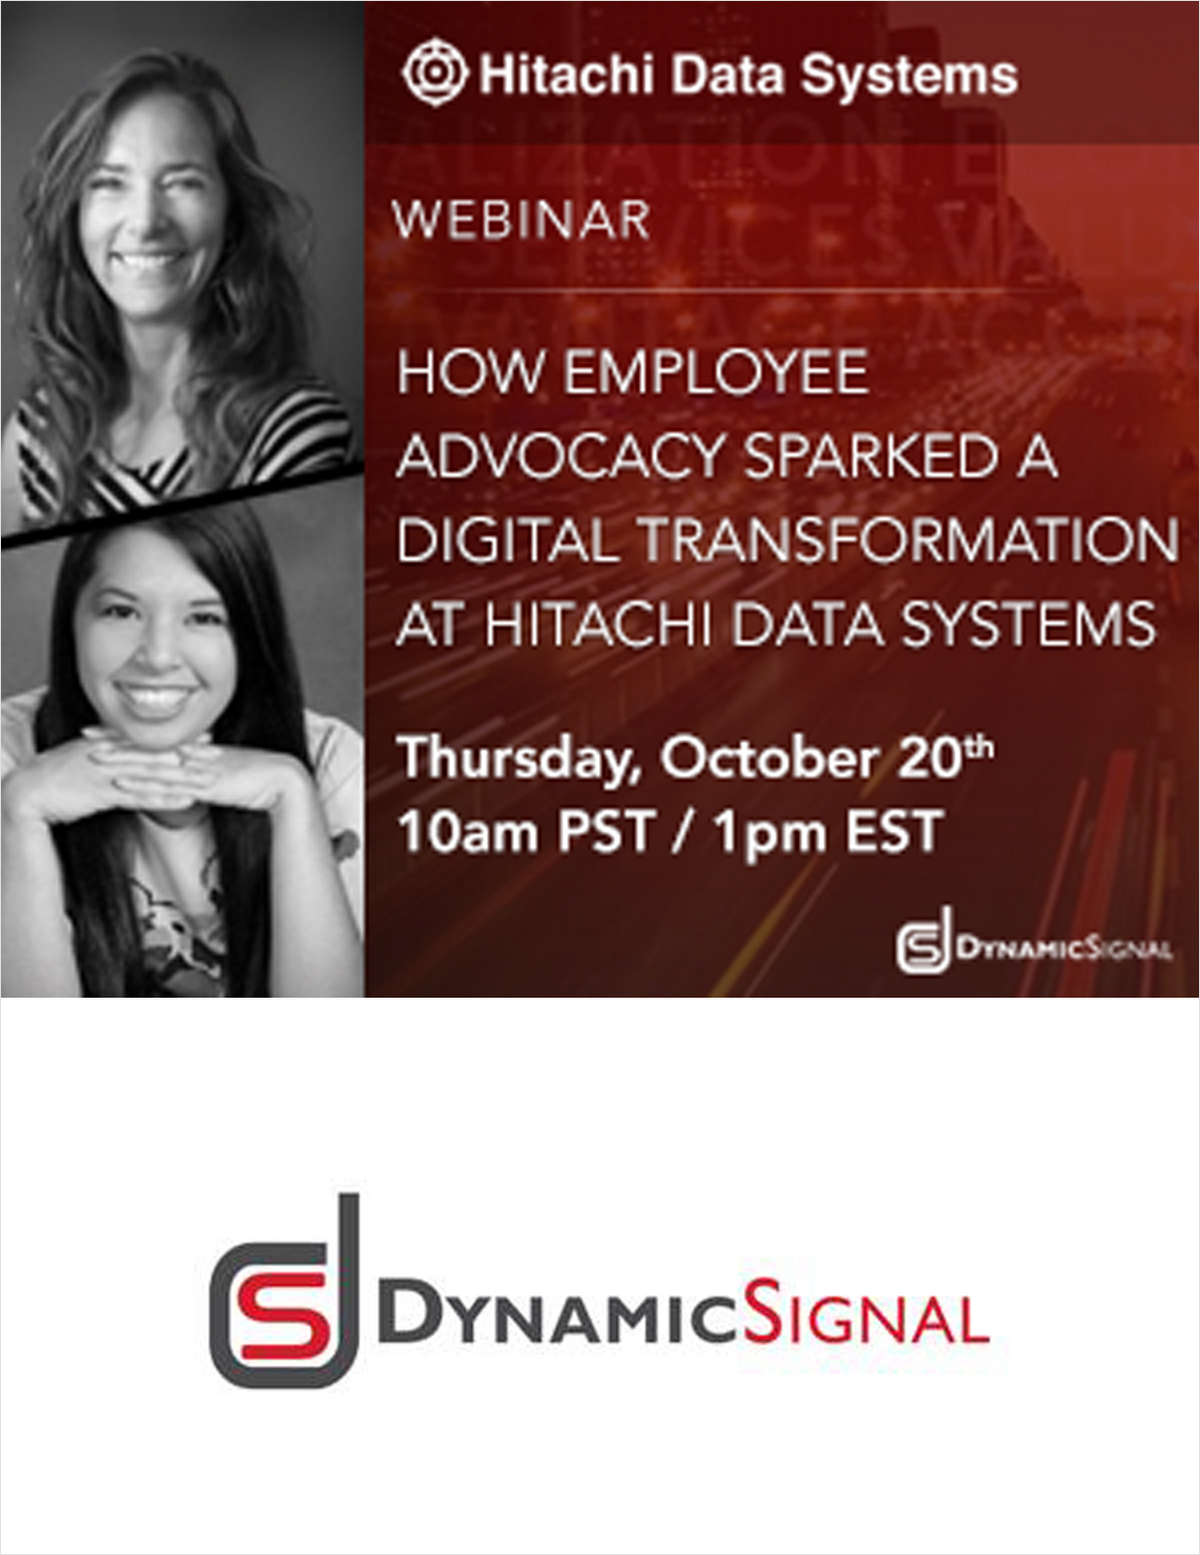 How Employee Advocacy Sparked A Digital Transformation at Hitachi Data Systems